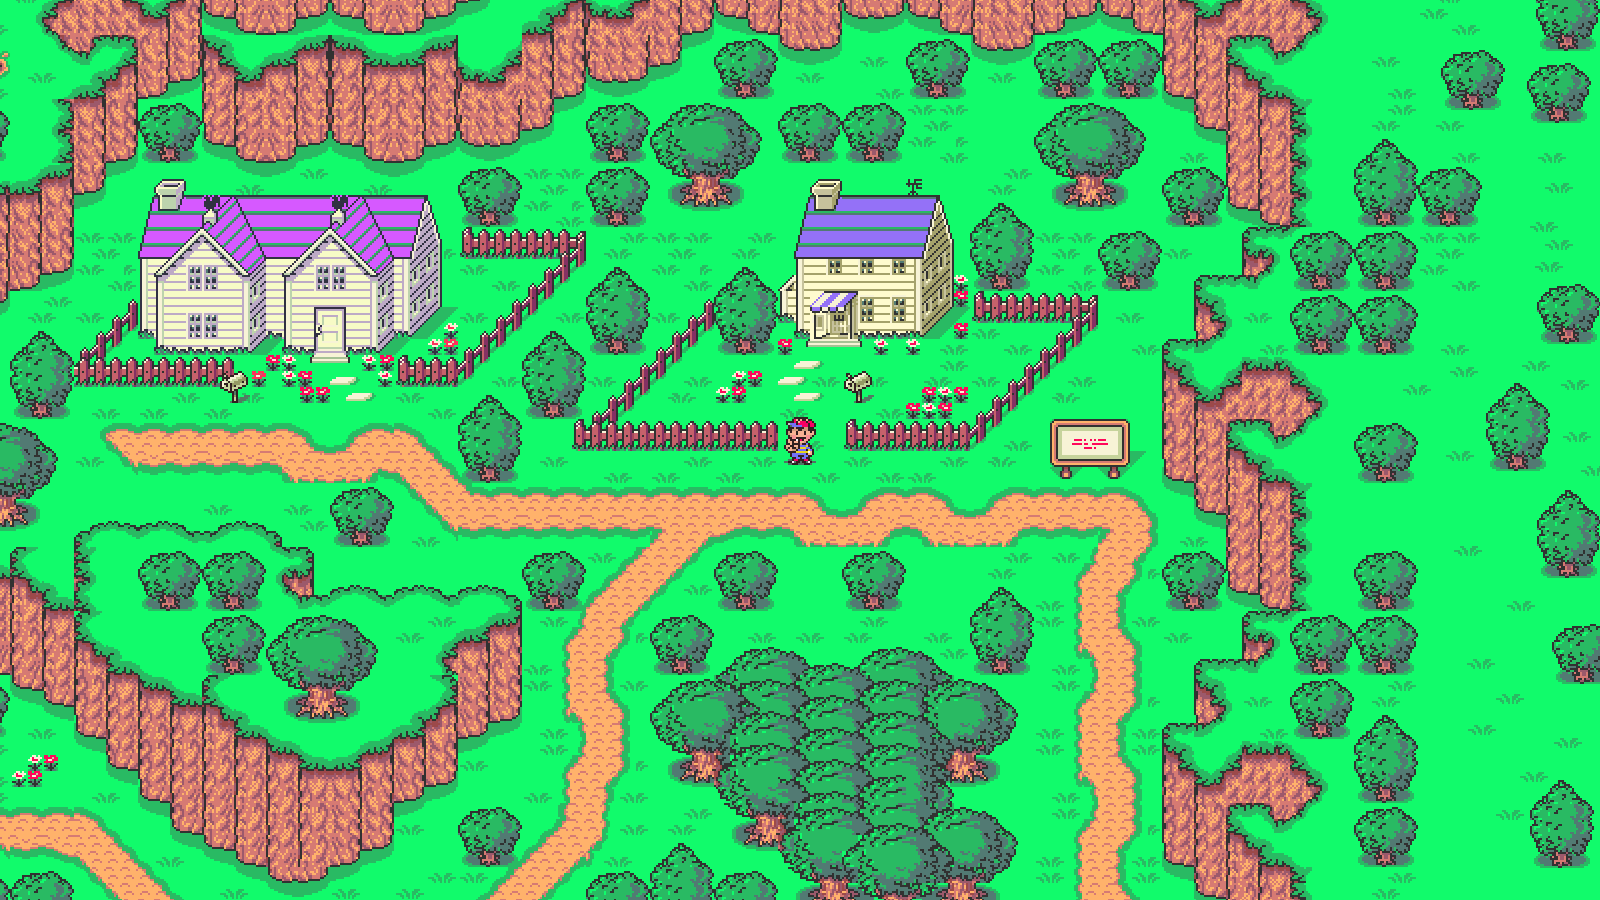 High Quality Image of Earthbound - 1600x900 px